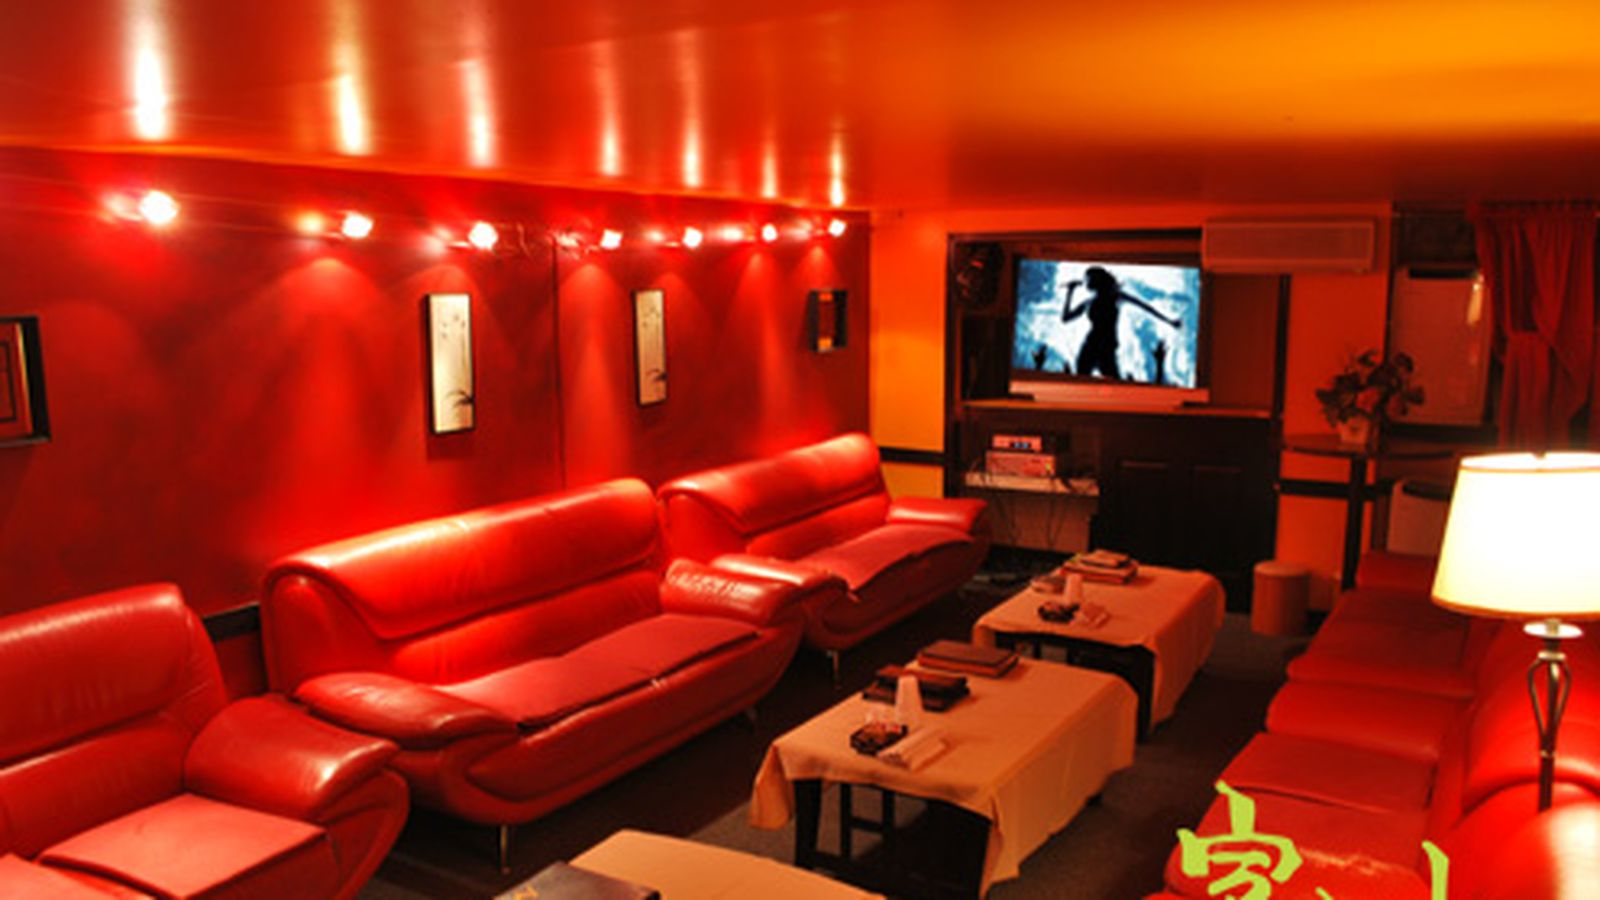 Bars In Philadelphia With Private Rooms